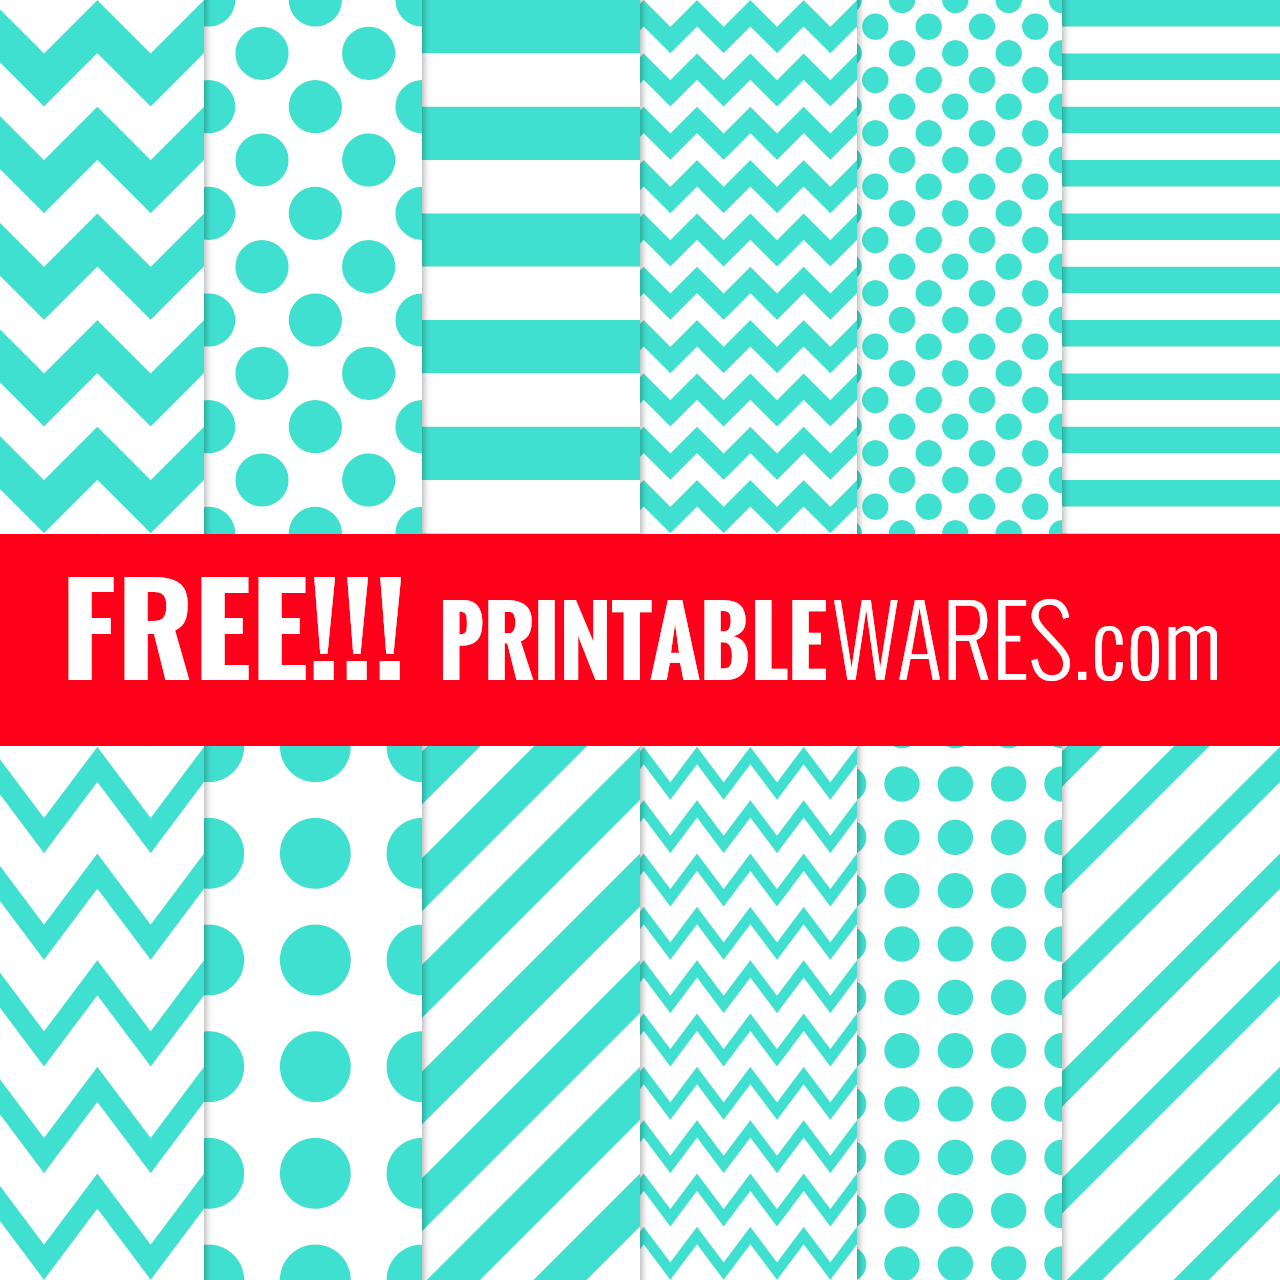 Printable Turquoise Scrapbook Backgrounds with Patterned Papers